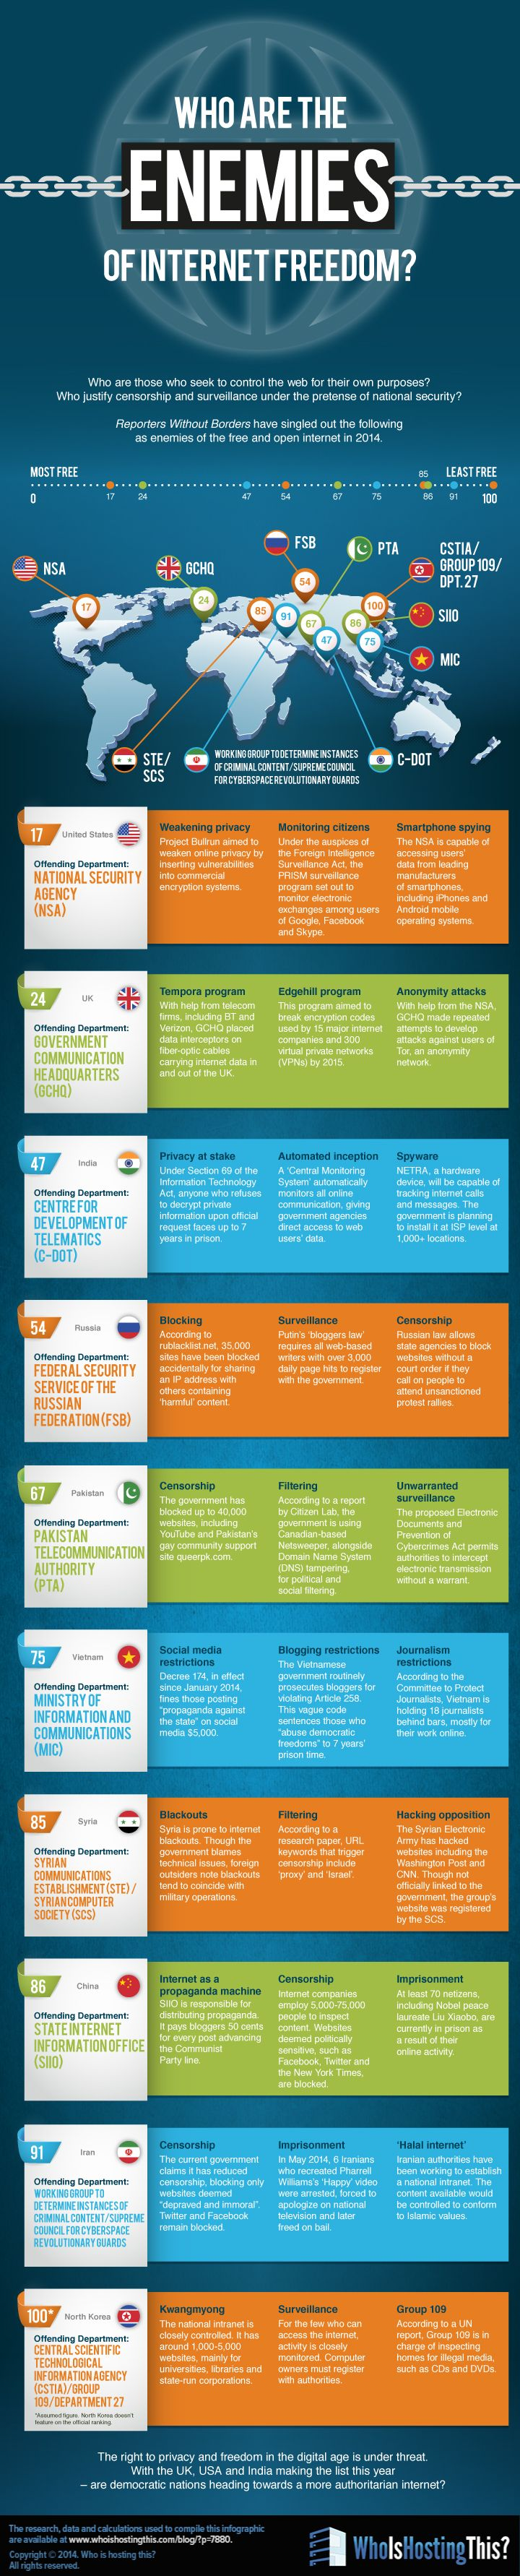 Who are the Enemies of the Internet freedom #infographic